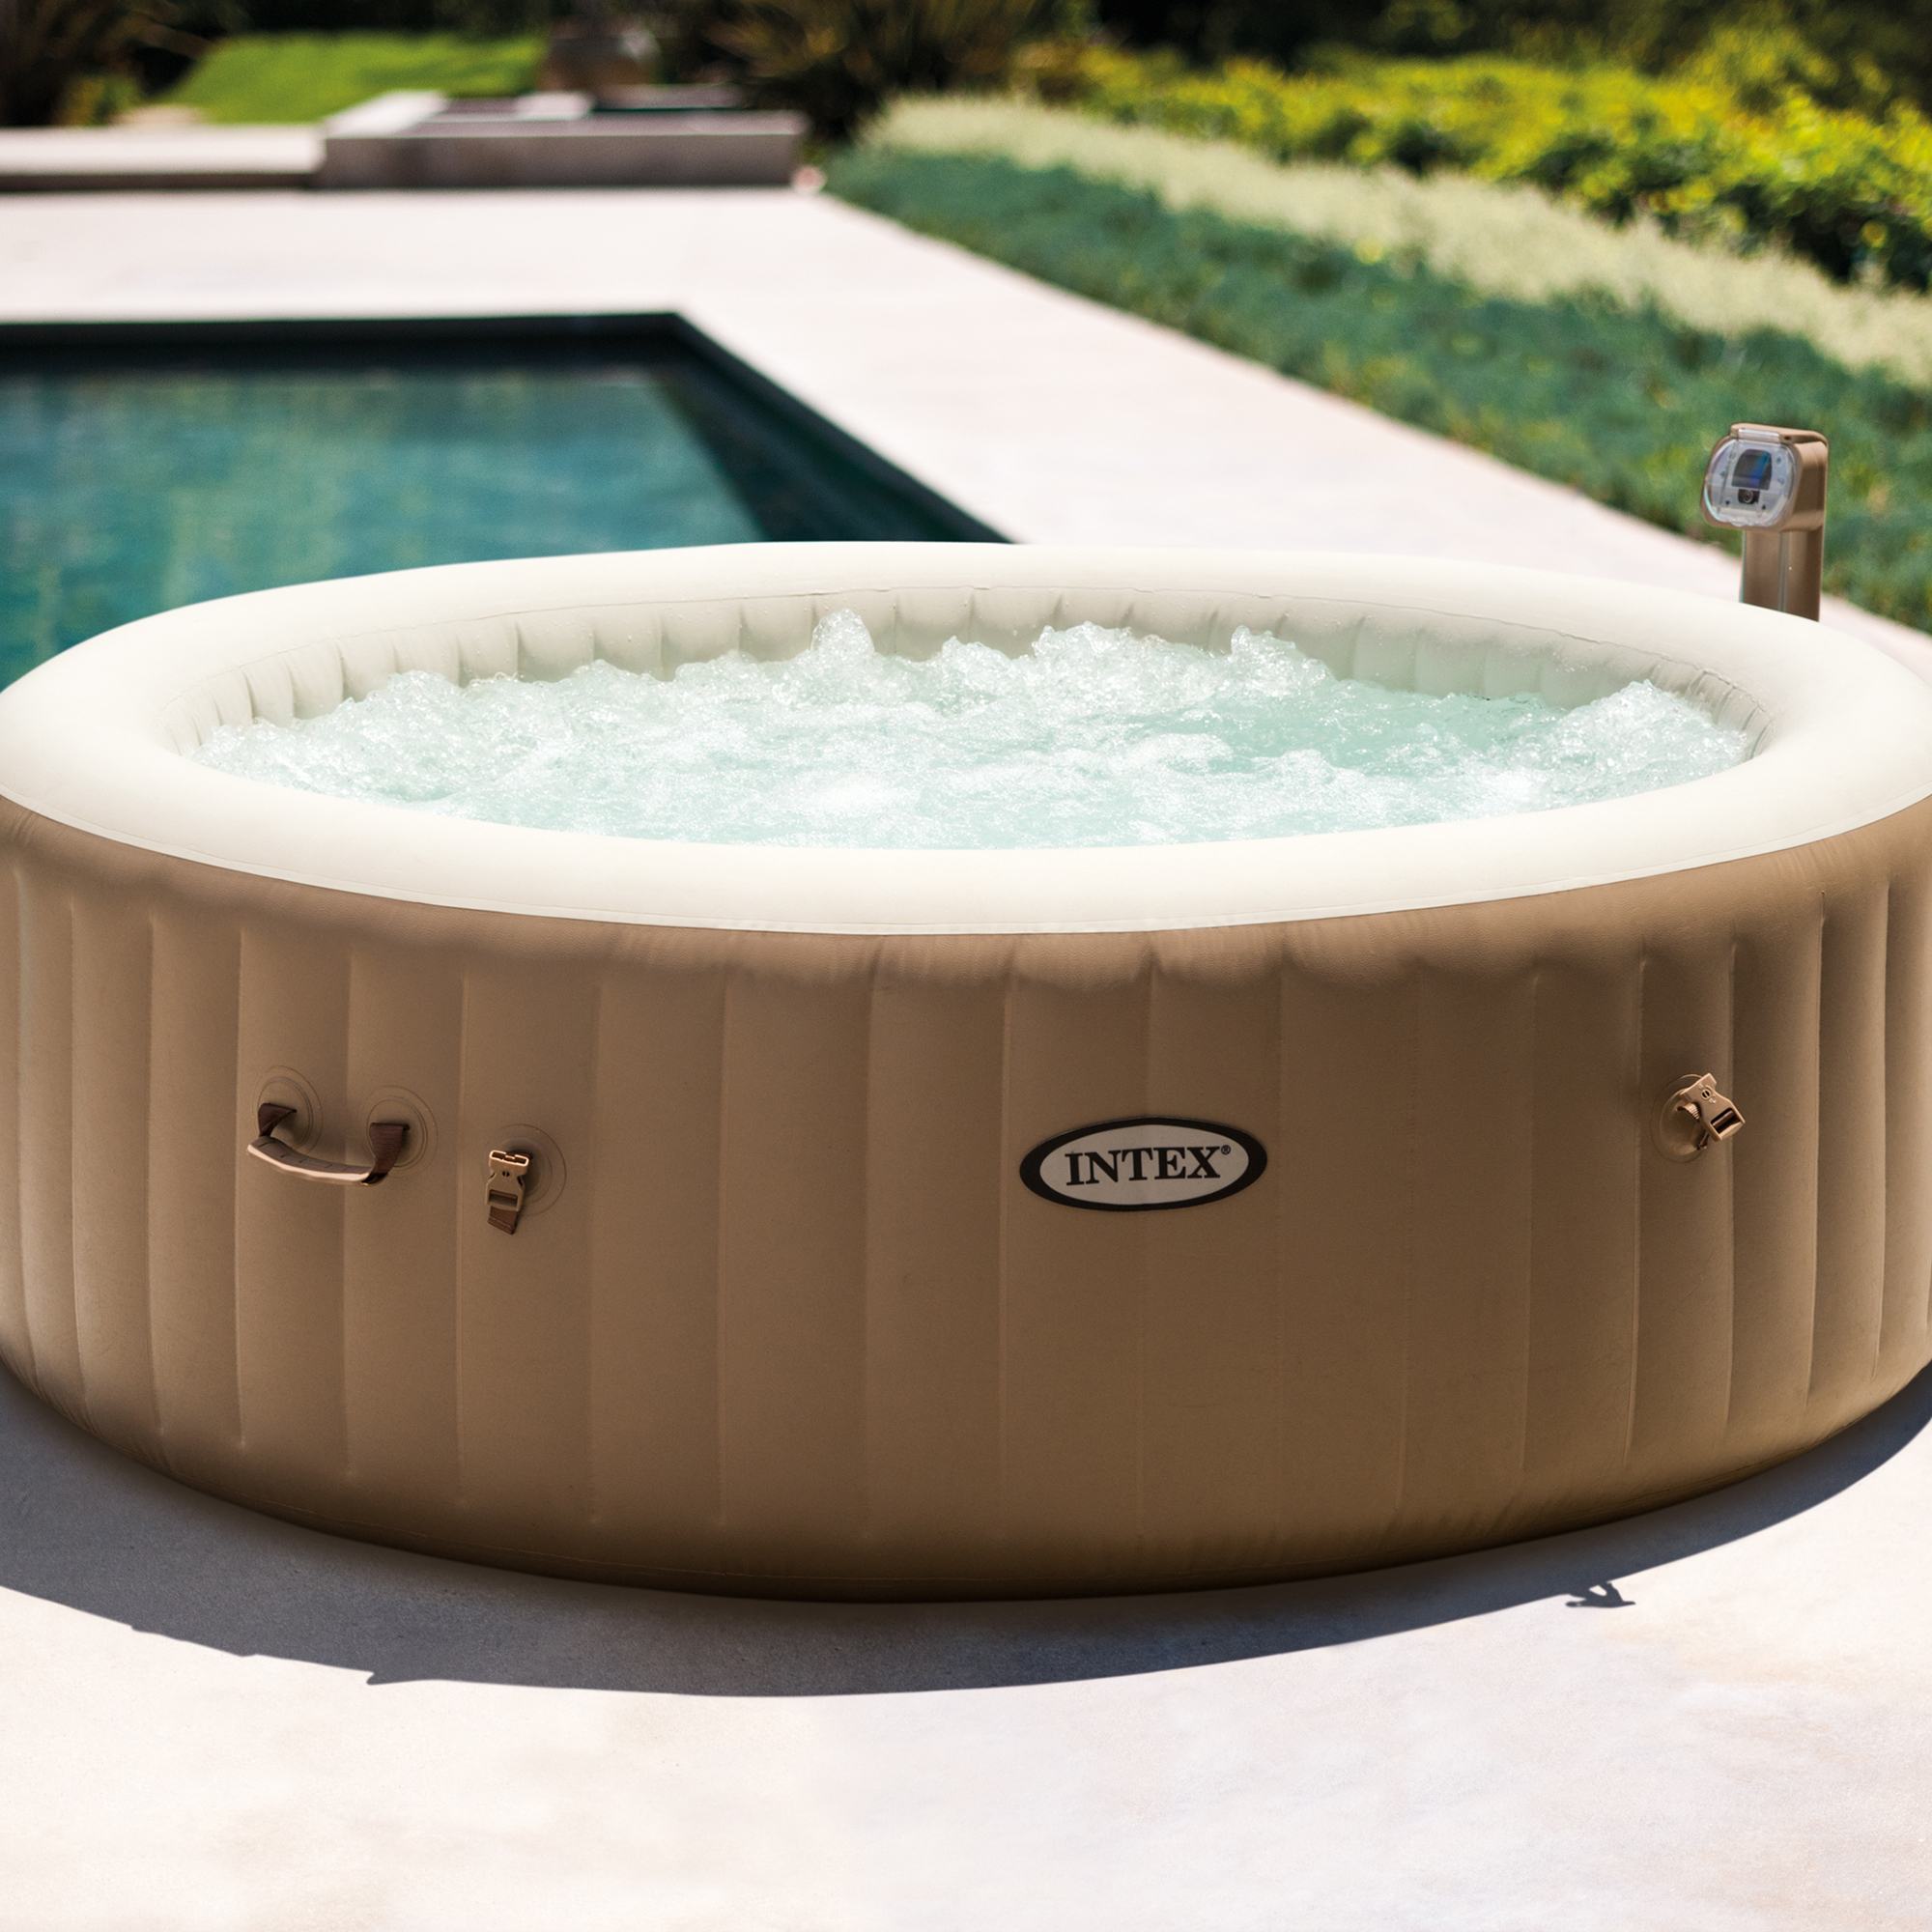 Intex inflatable pure spa 6 person portable heated bubble for Types of hot tubs